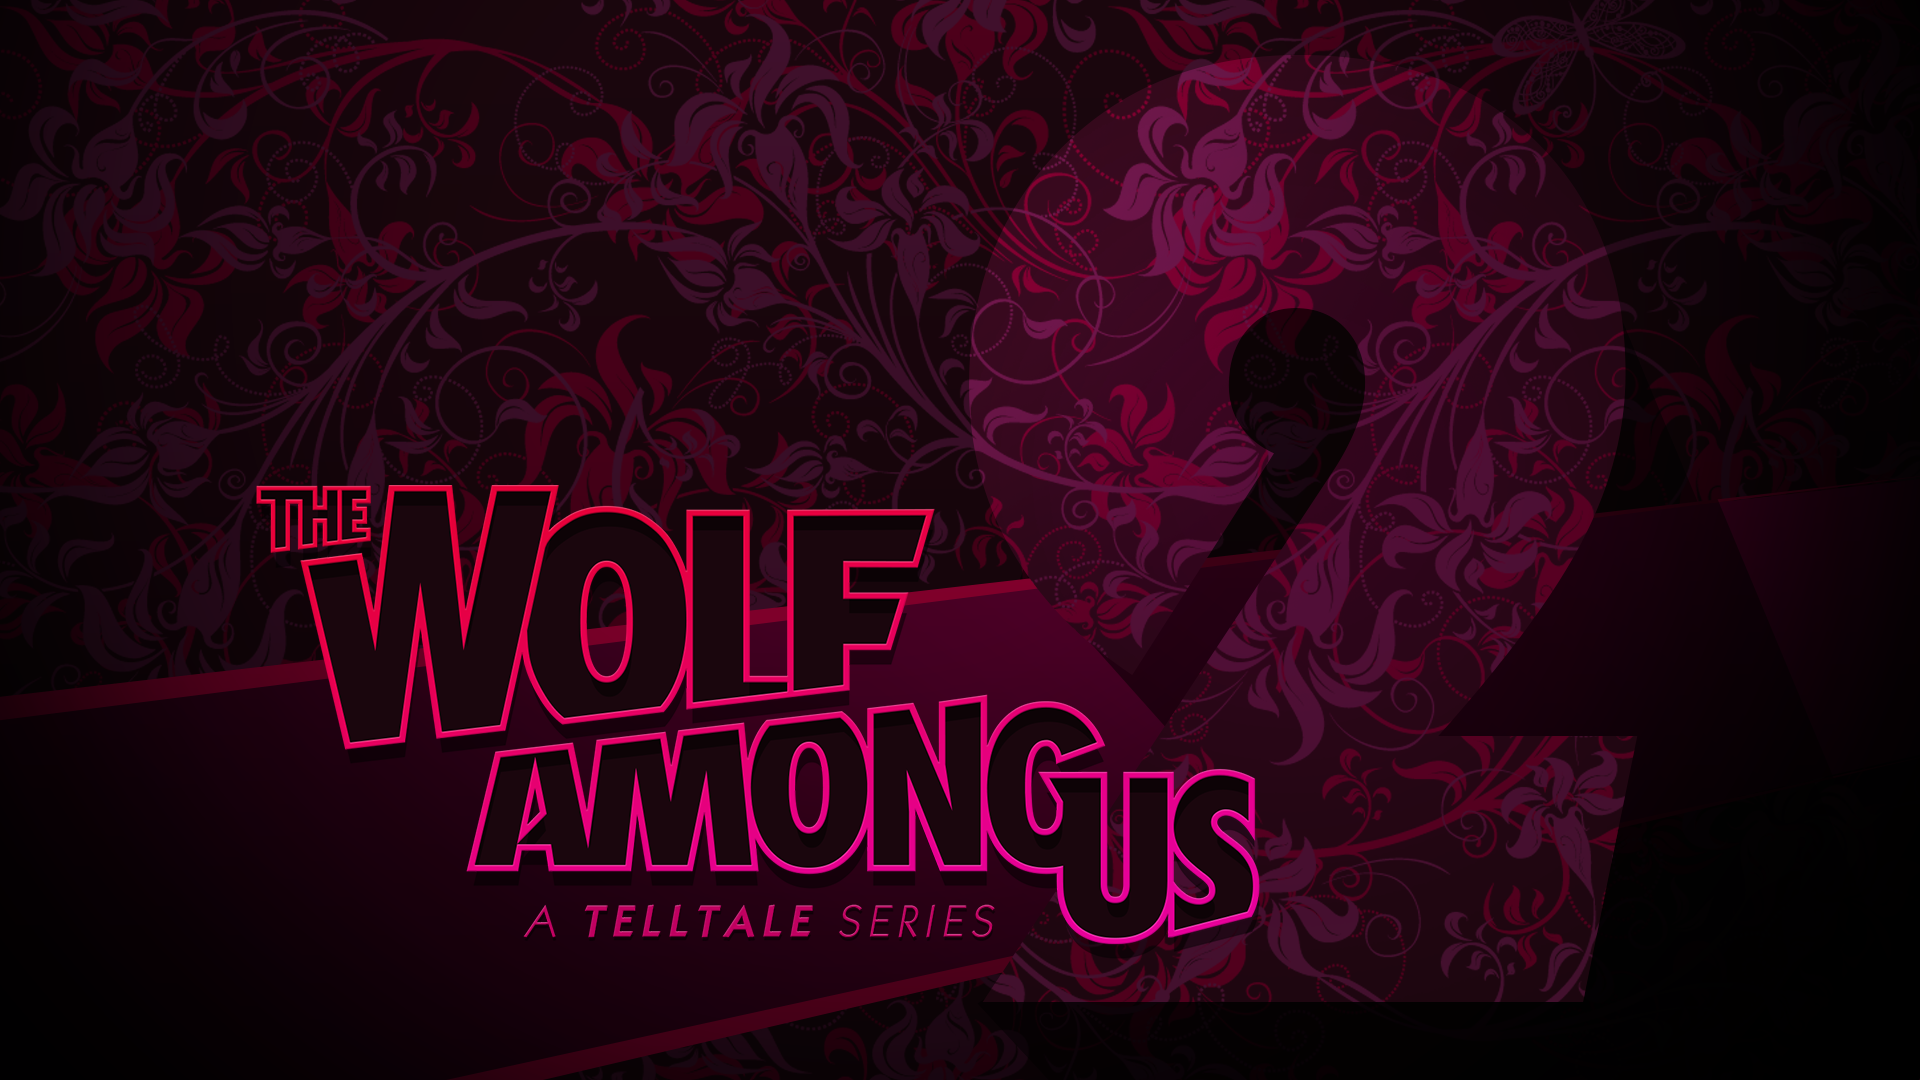 the-wolf-among-us-2-llegara-proximo-ano-frikigamers.com